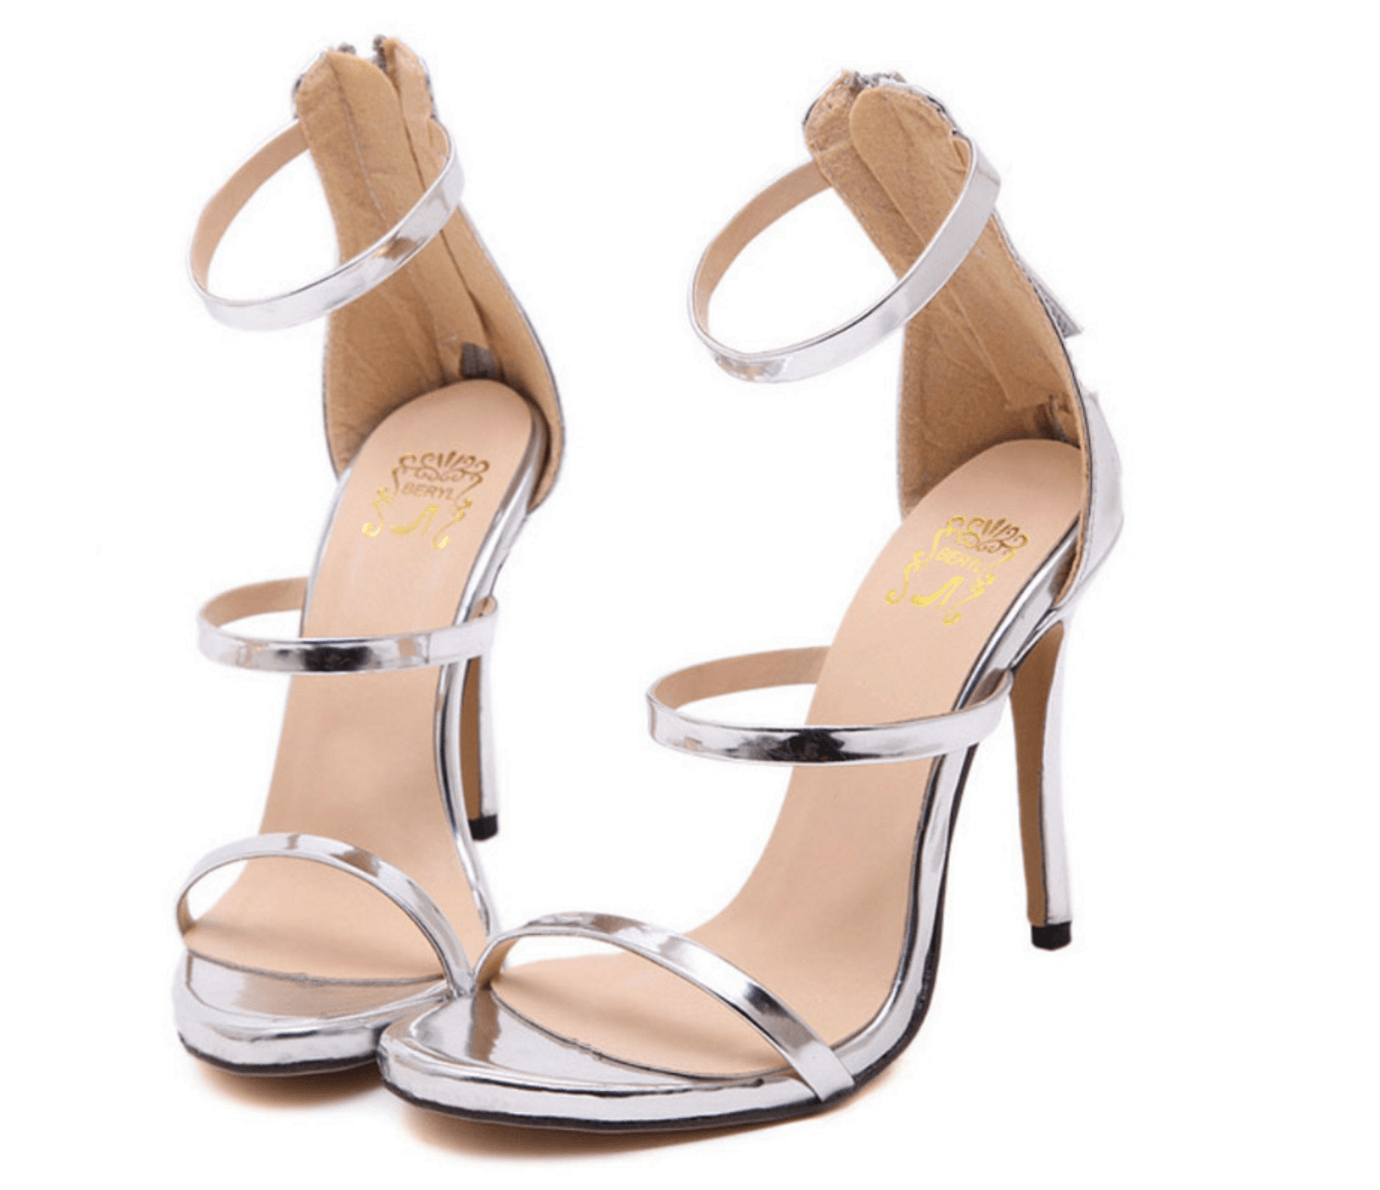 Silver color patent leather high heel sandals strappy ankle-wrap style